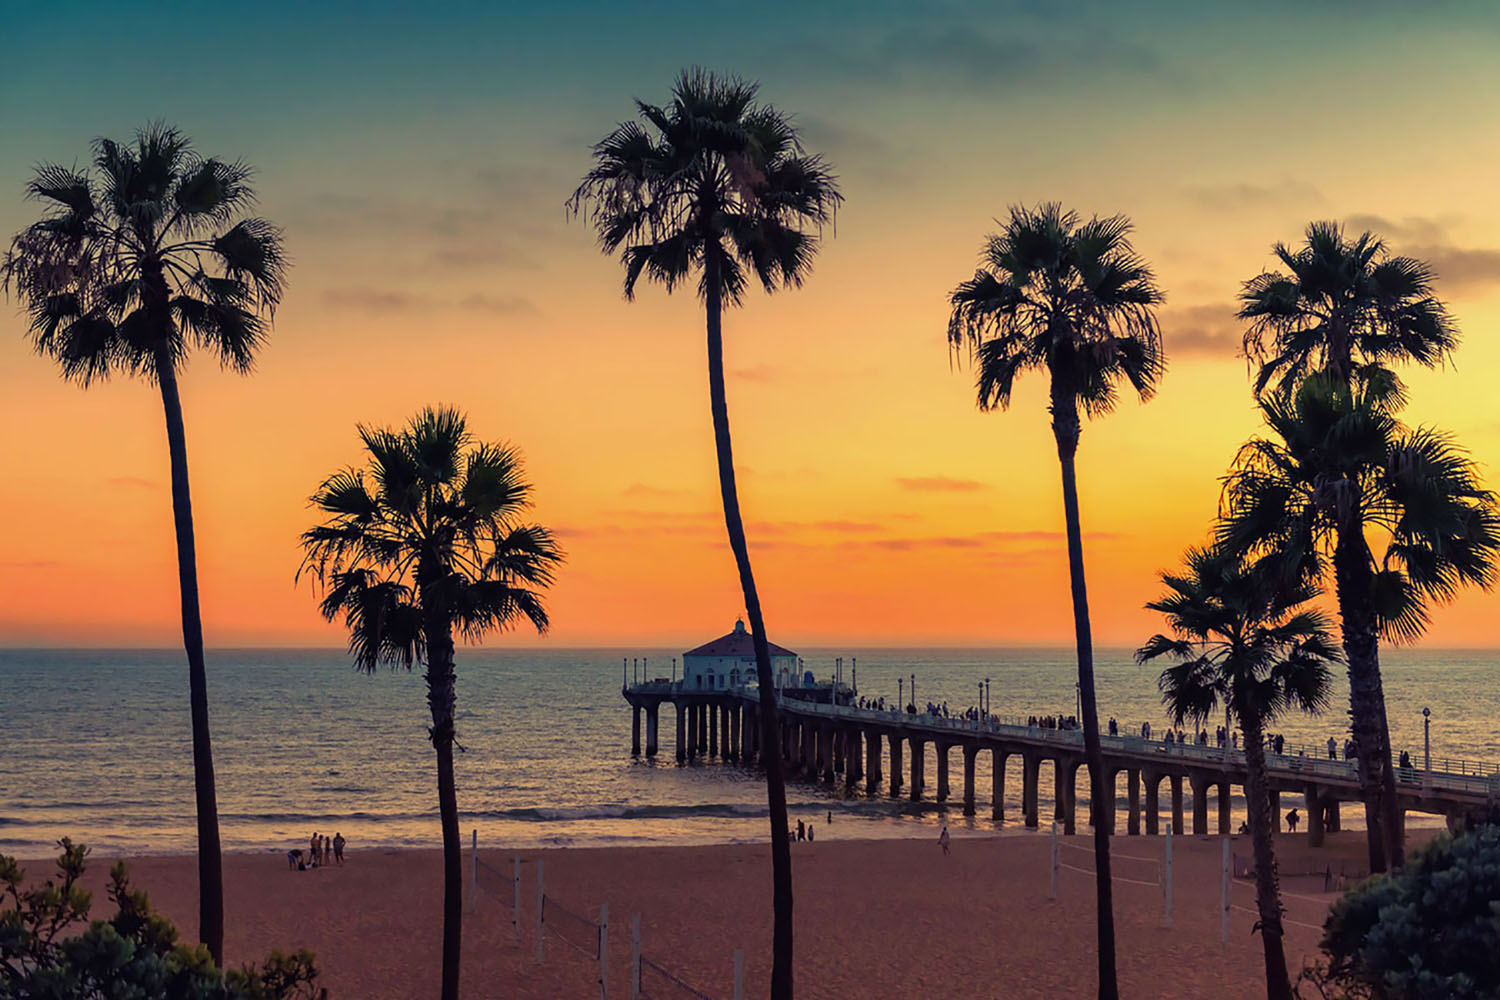 Manhattan Beach at sunset in Los Angeles, California